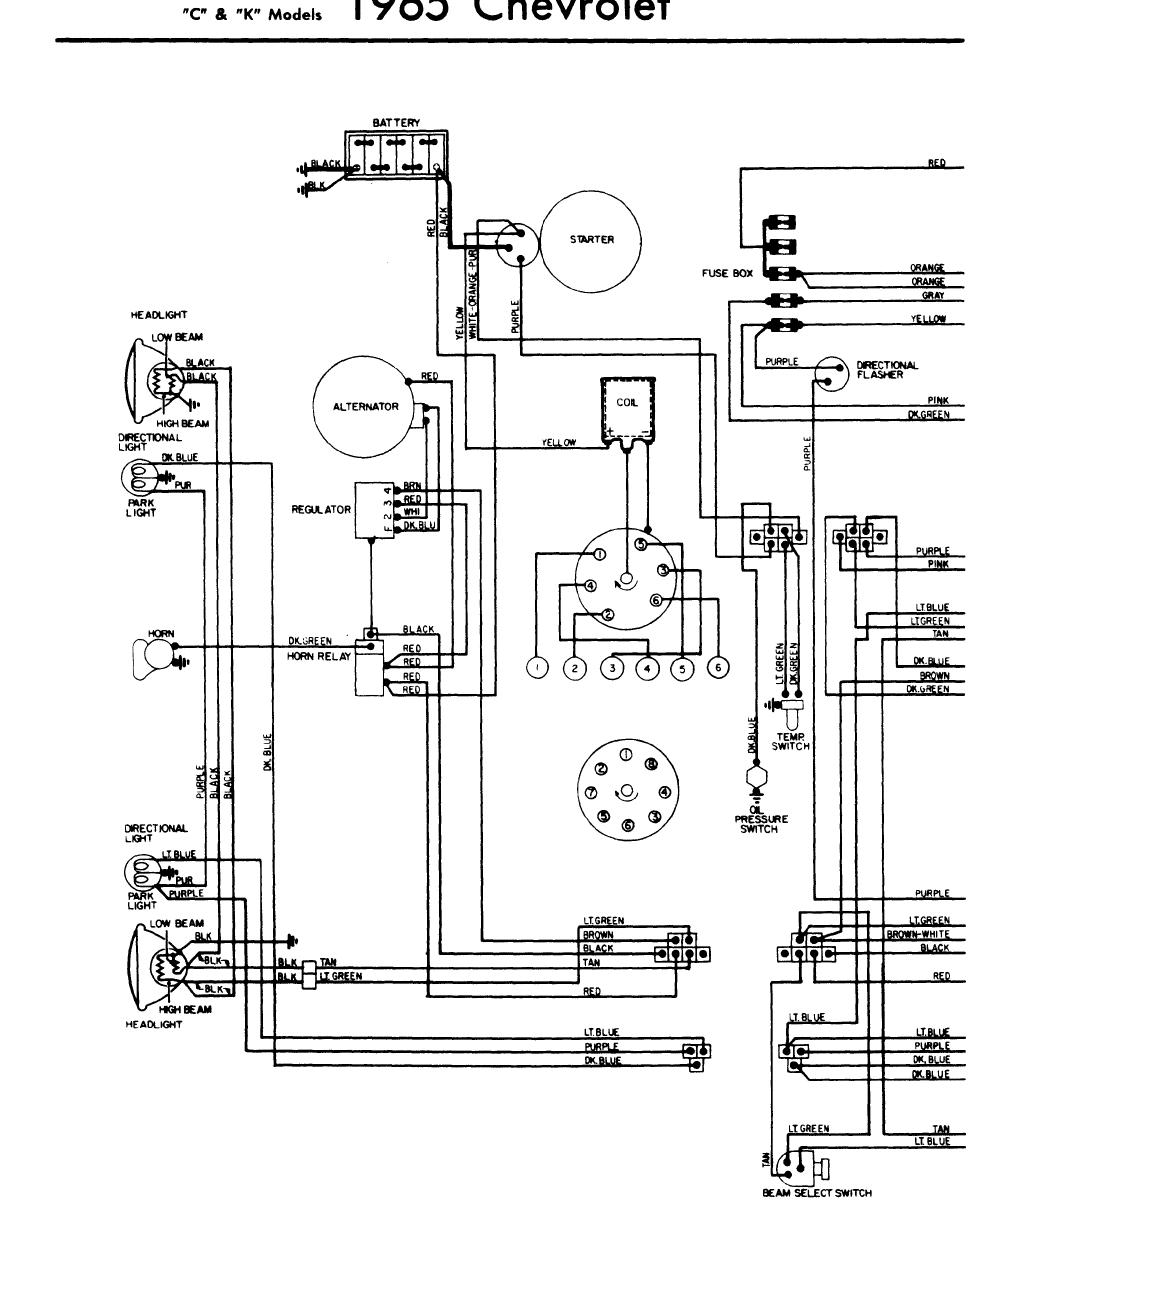 65 chevy truck engine wiring diagram  wiring  auto wiring